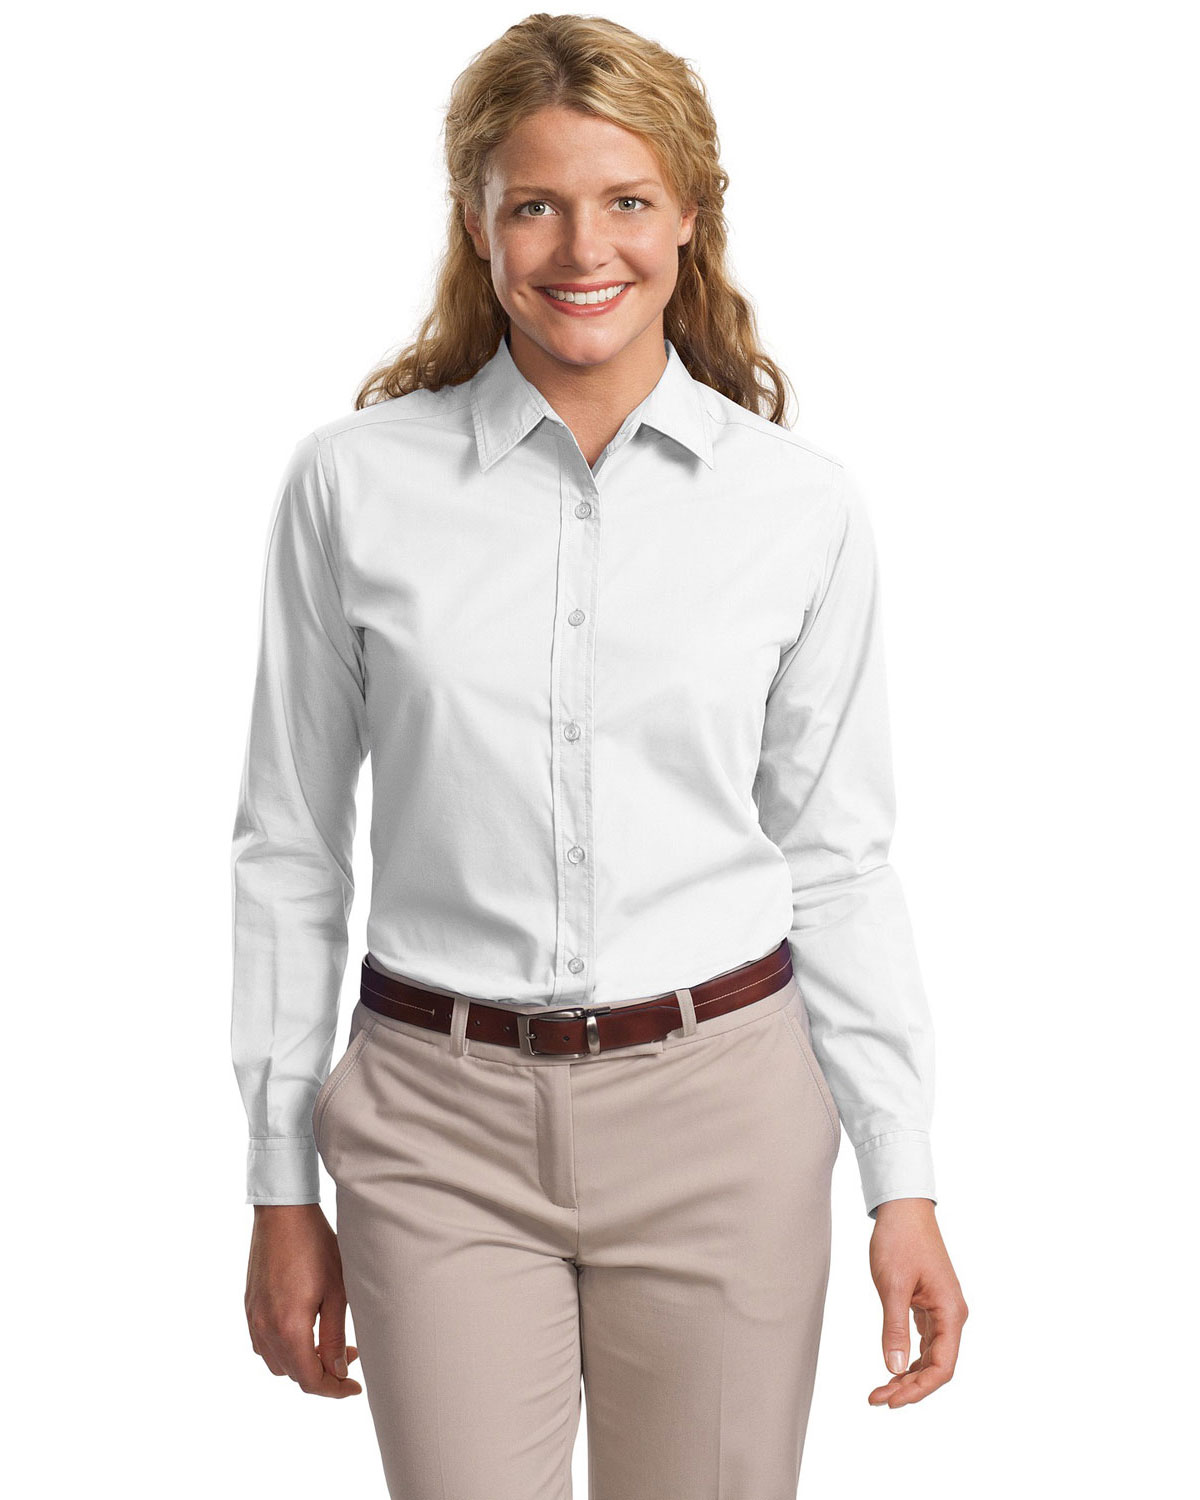 Port Authority L607 Women Long Sleeve Easy Care, Soil Resistant Shirt White at GotApparel